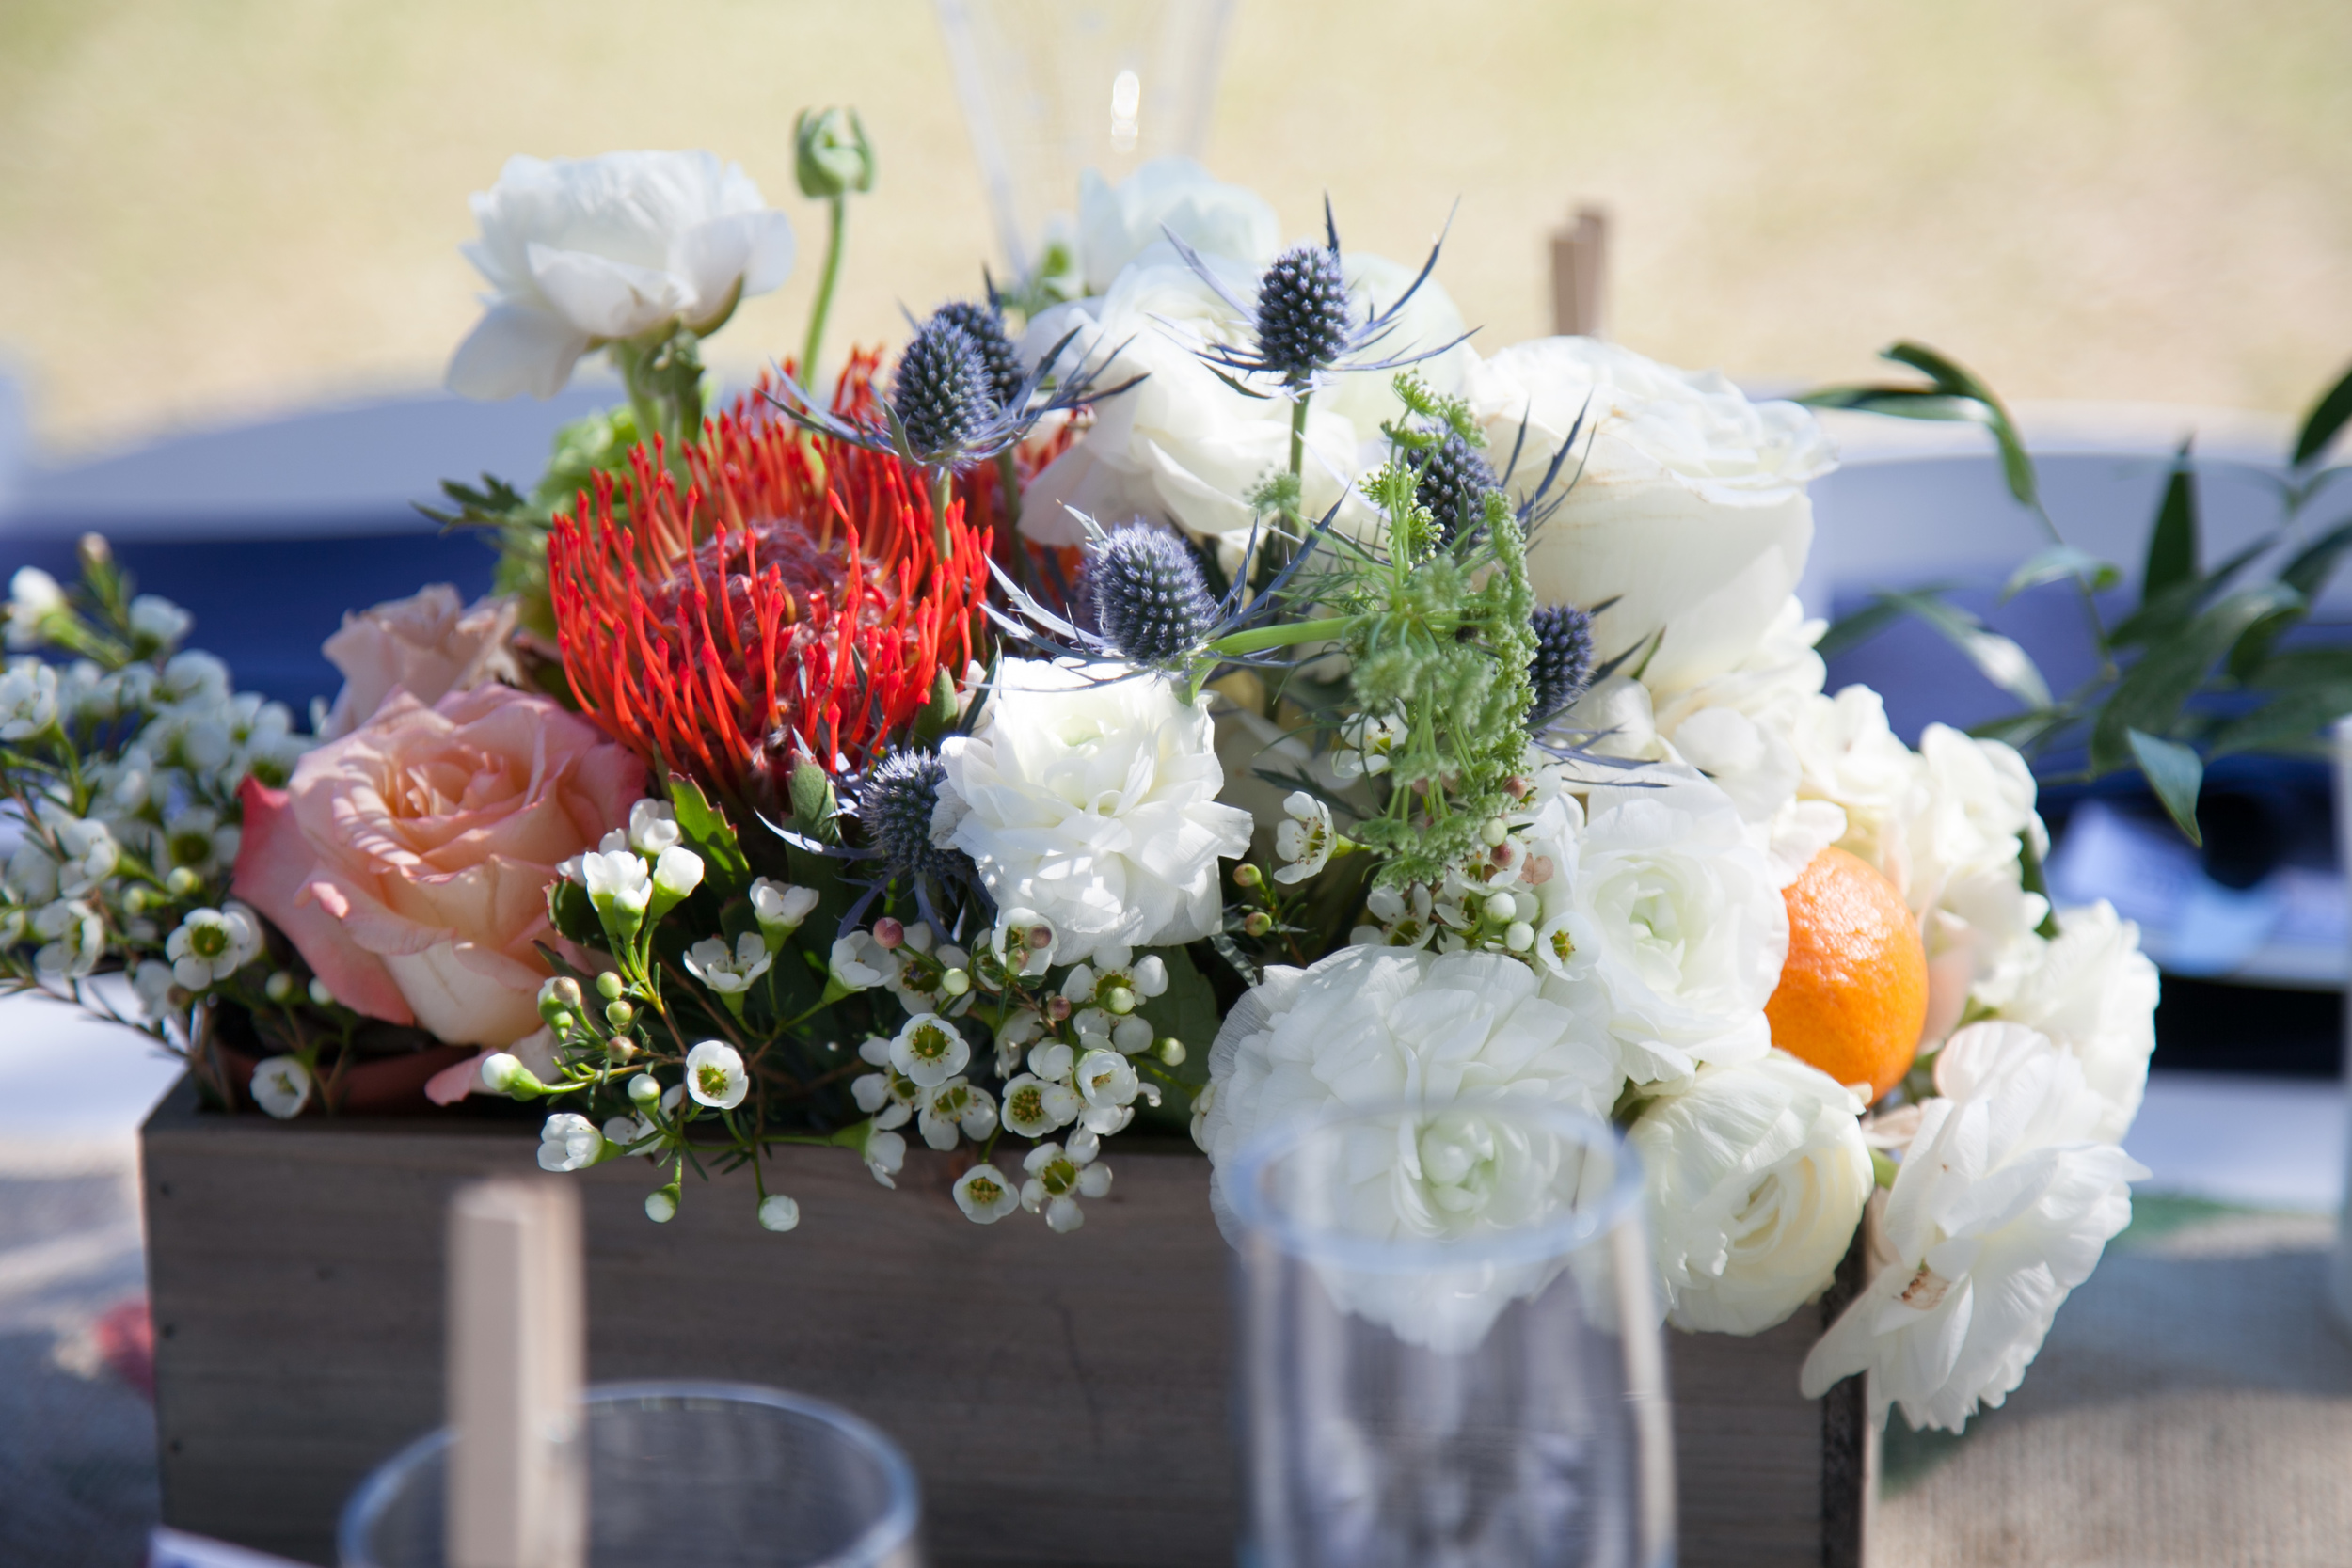 Hedgeboxes filled with assorted flowers like renunculus, blue thistle, and waxflower were accented with citrus